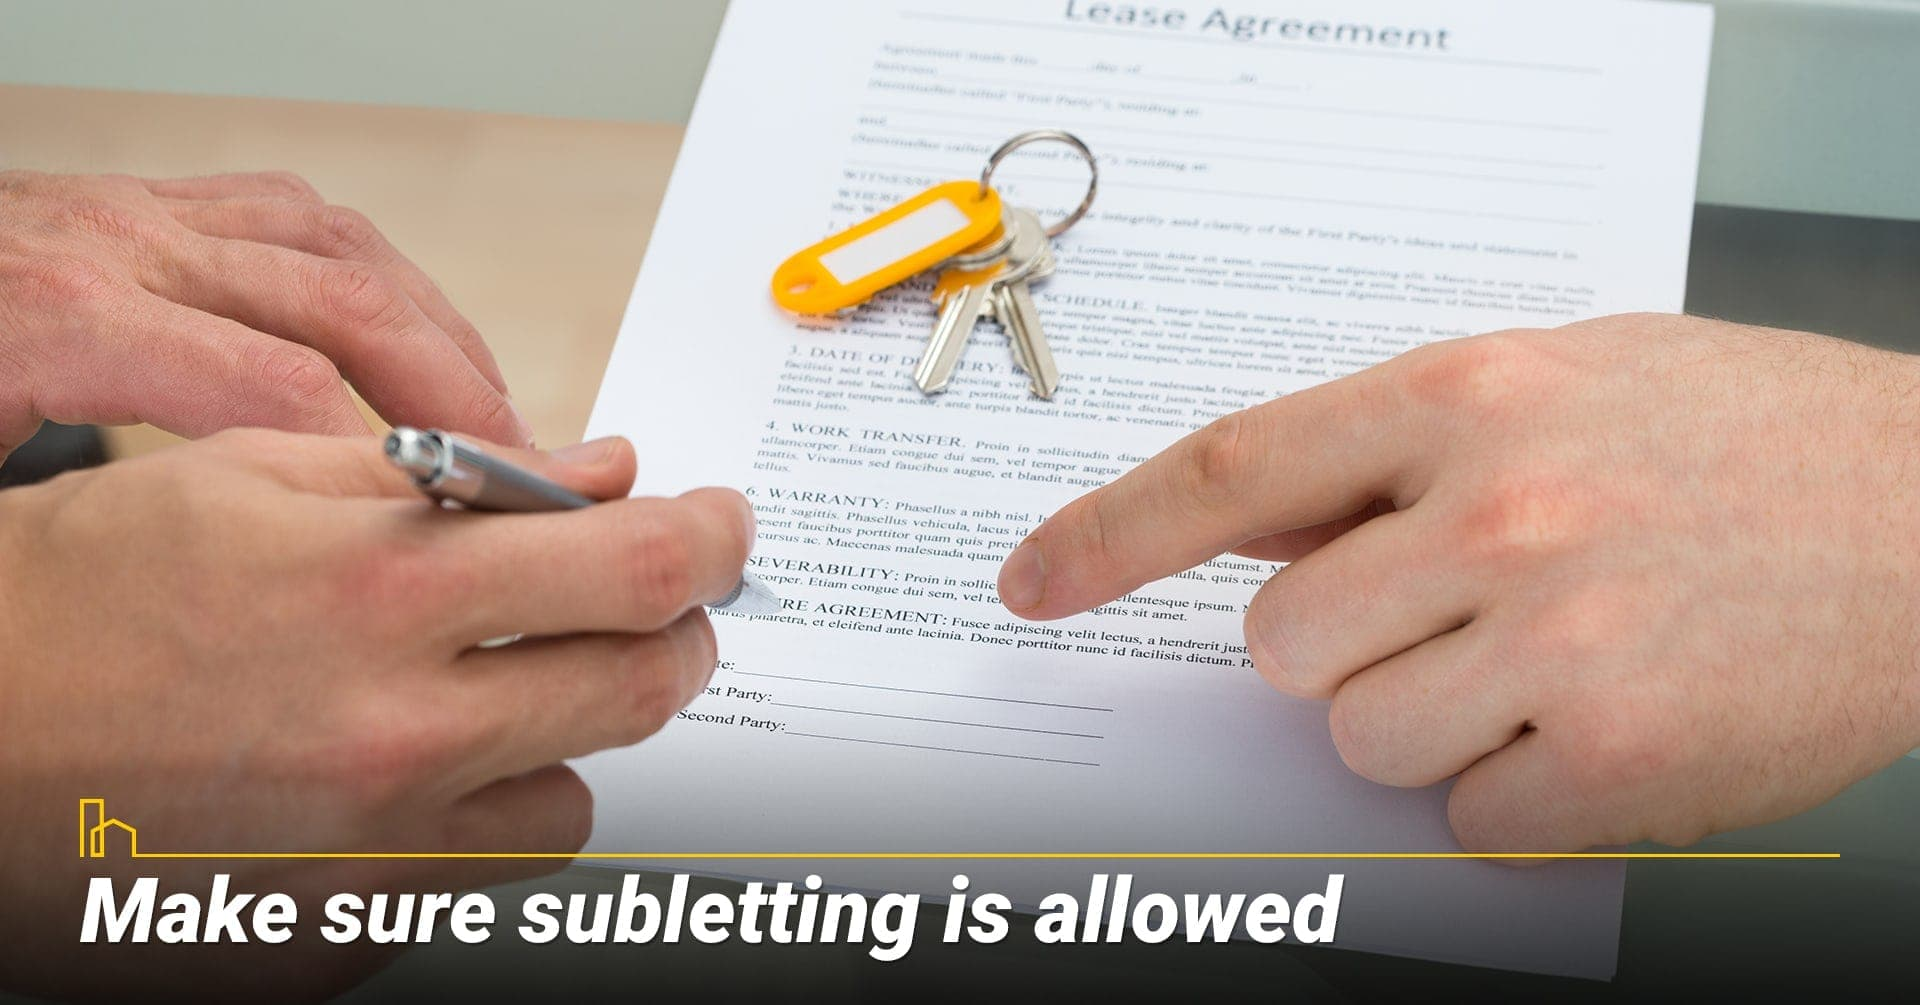 Make sure subletting is allowed, do your homework before subletting